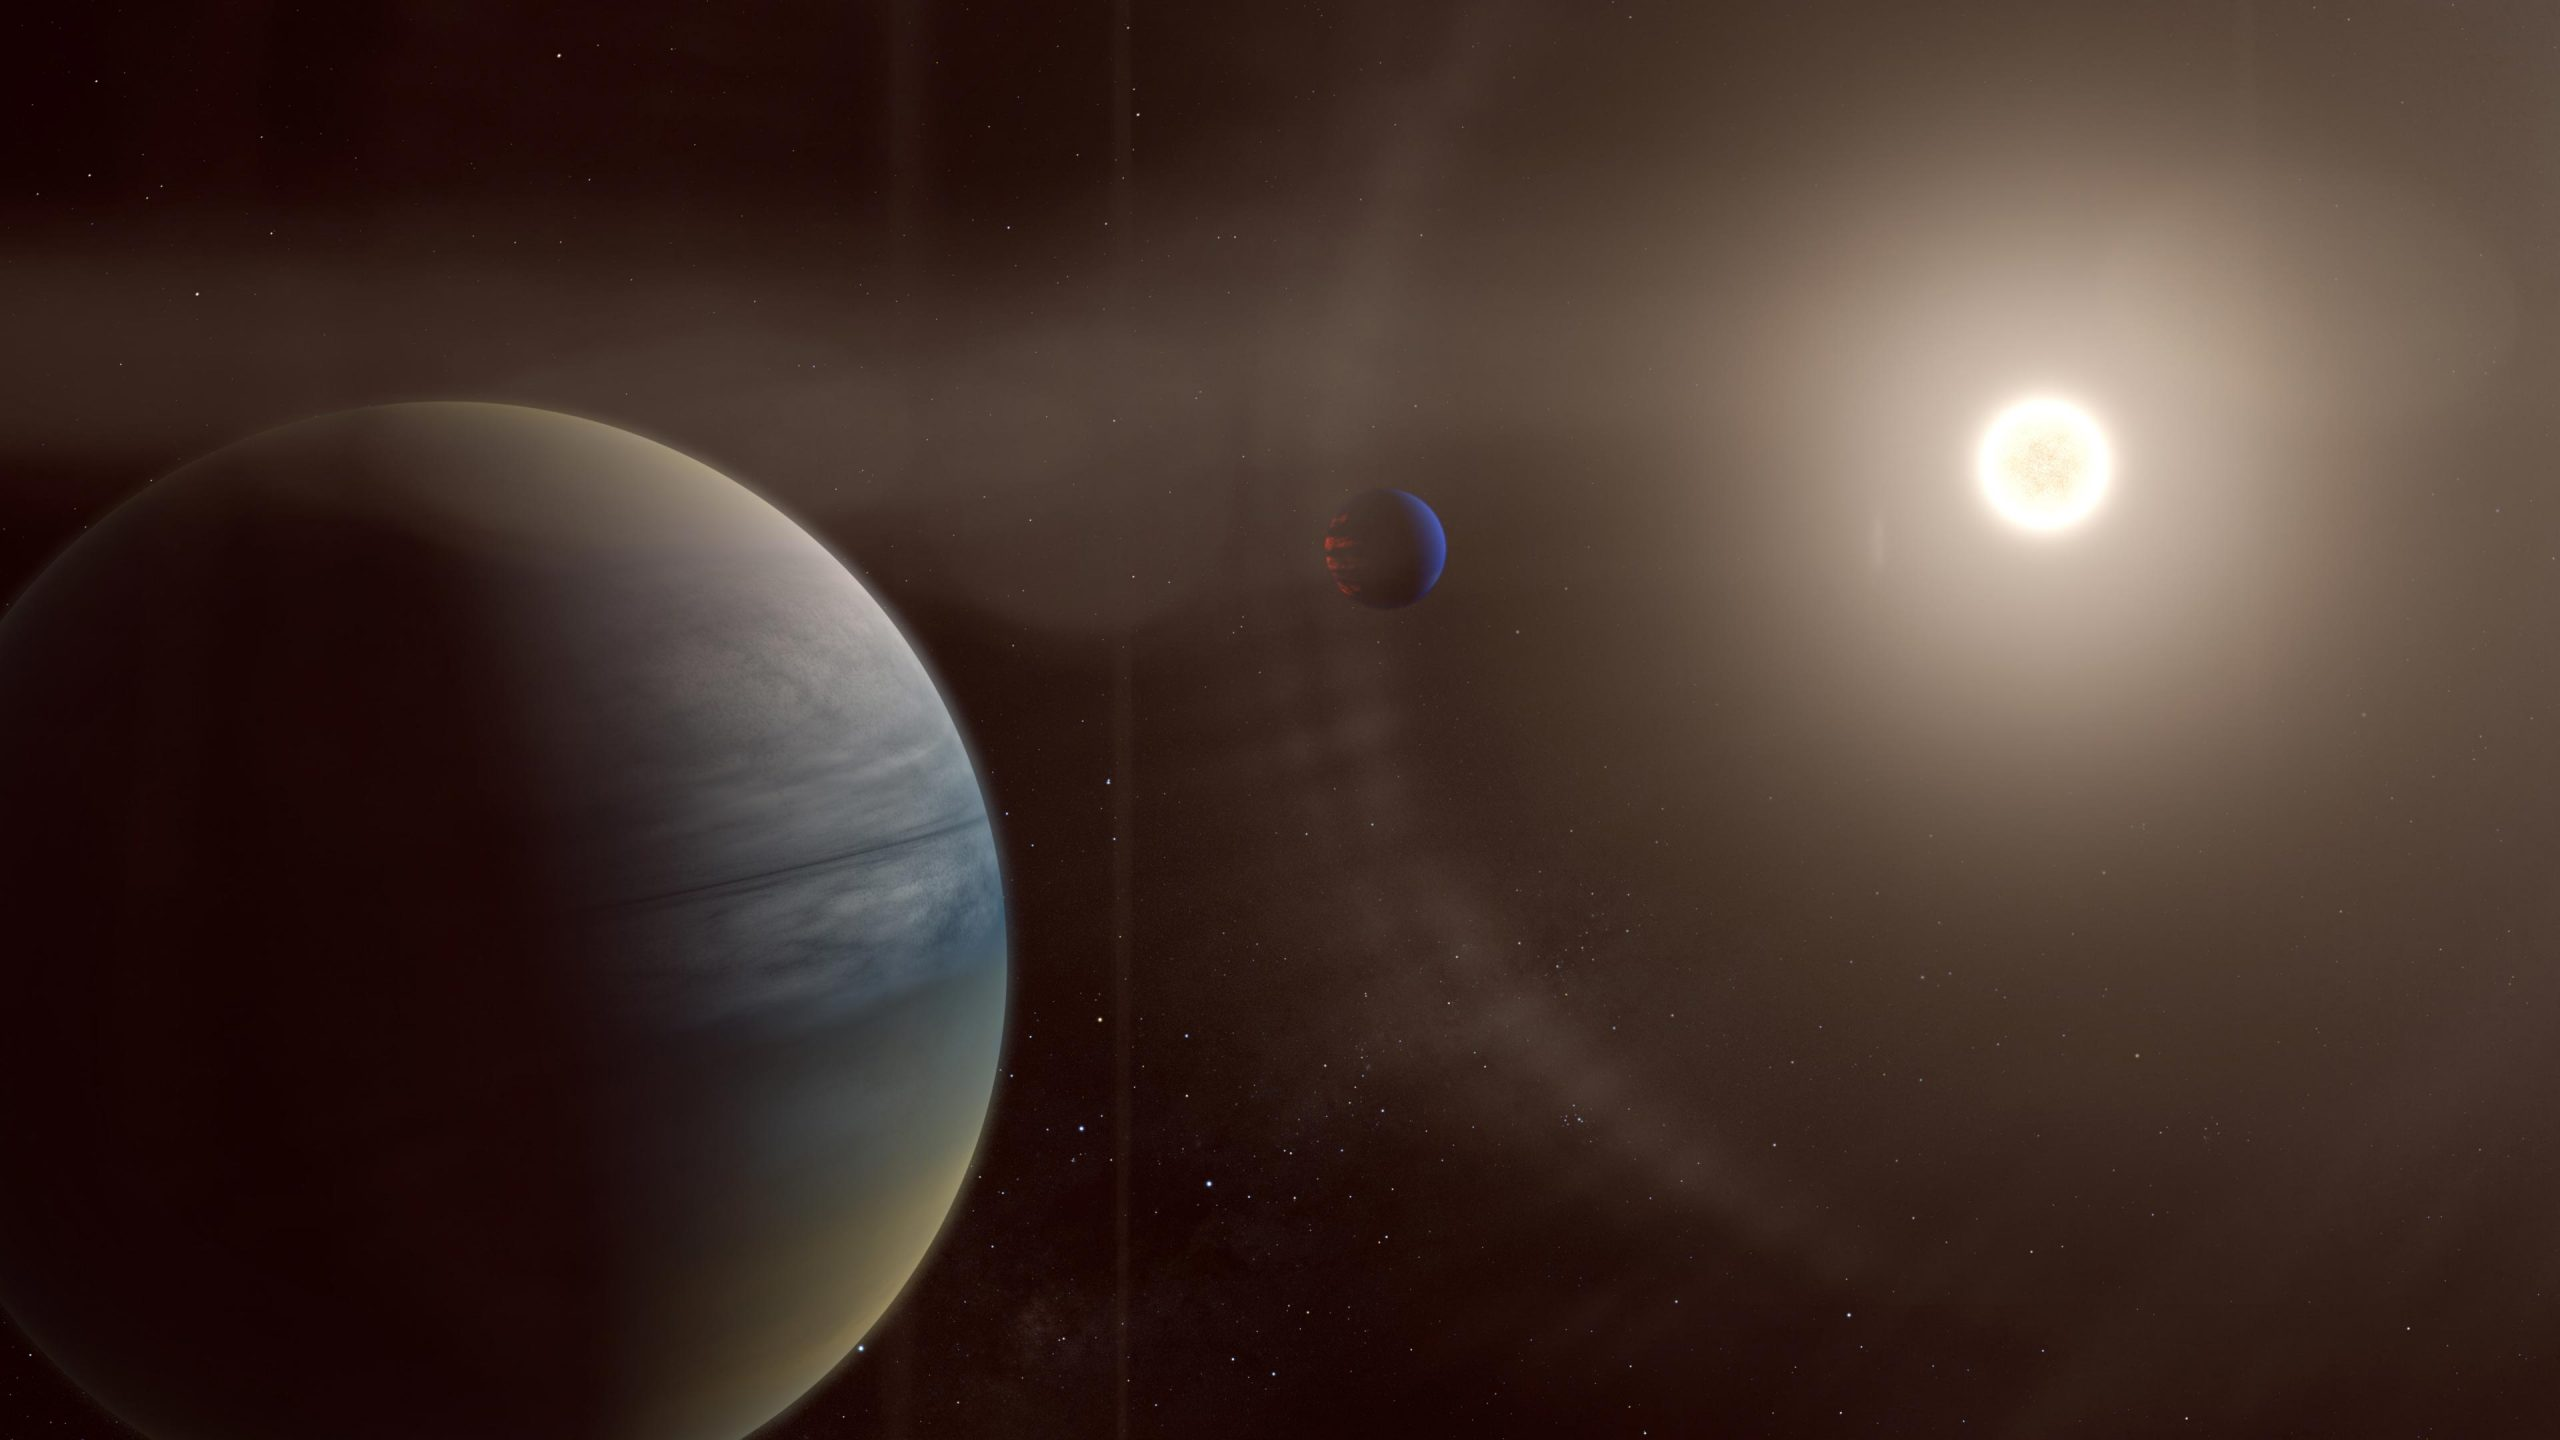 Out of This World Discovery by Citizen Scientists: Two Gaseous Planets Around a Bright Sun-Like Star - SciTechDaily